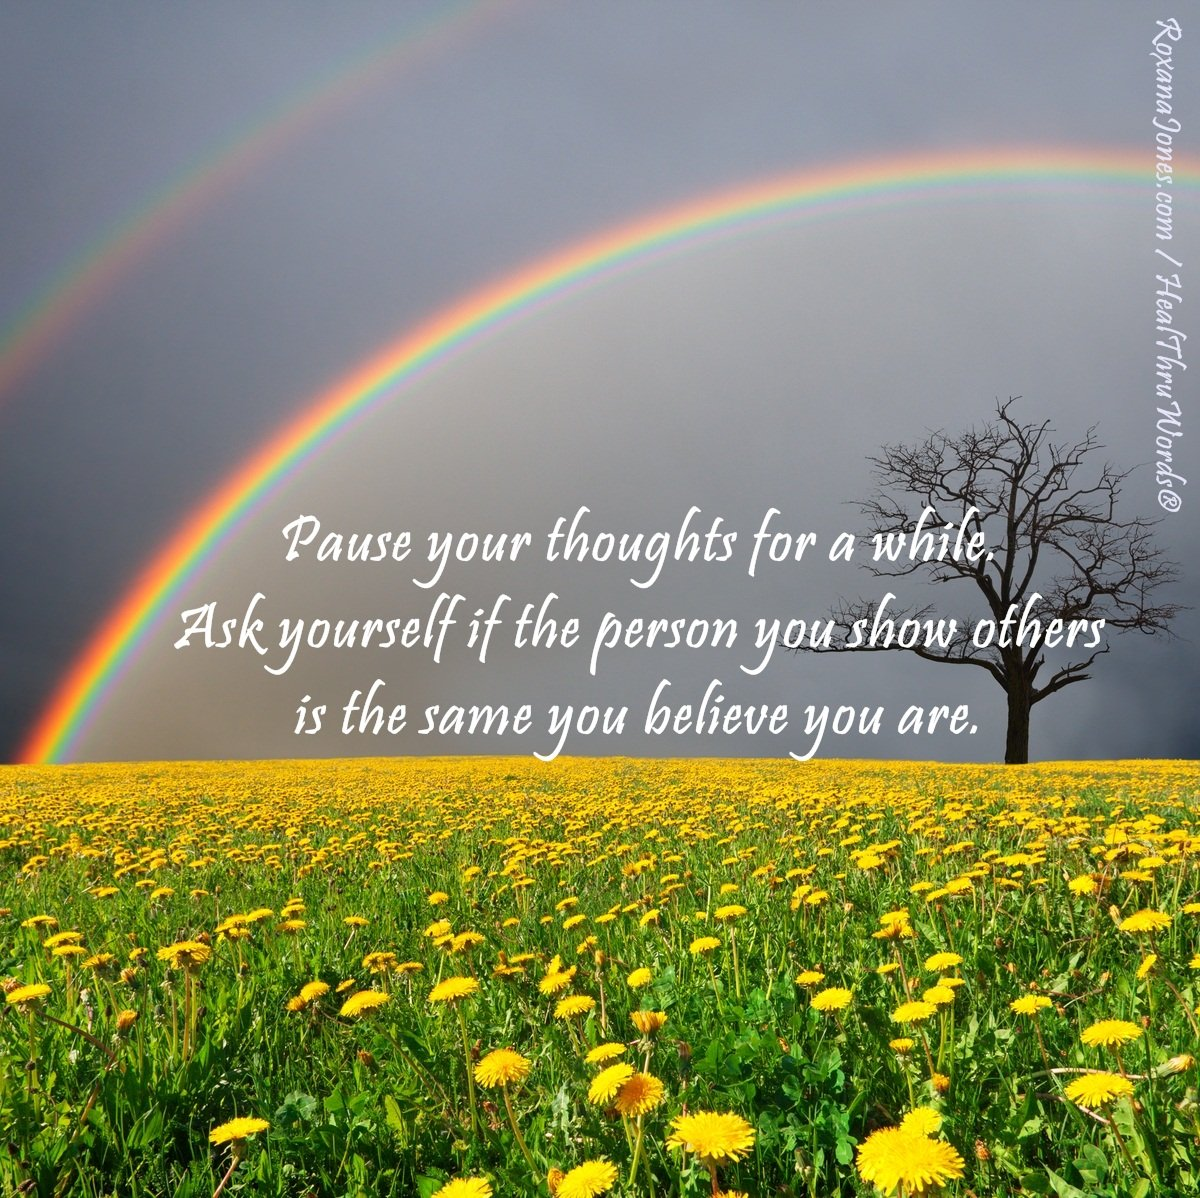 Inspirational Image: Who are You?